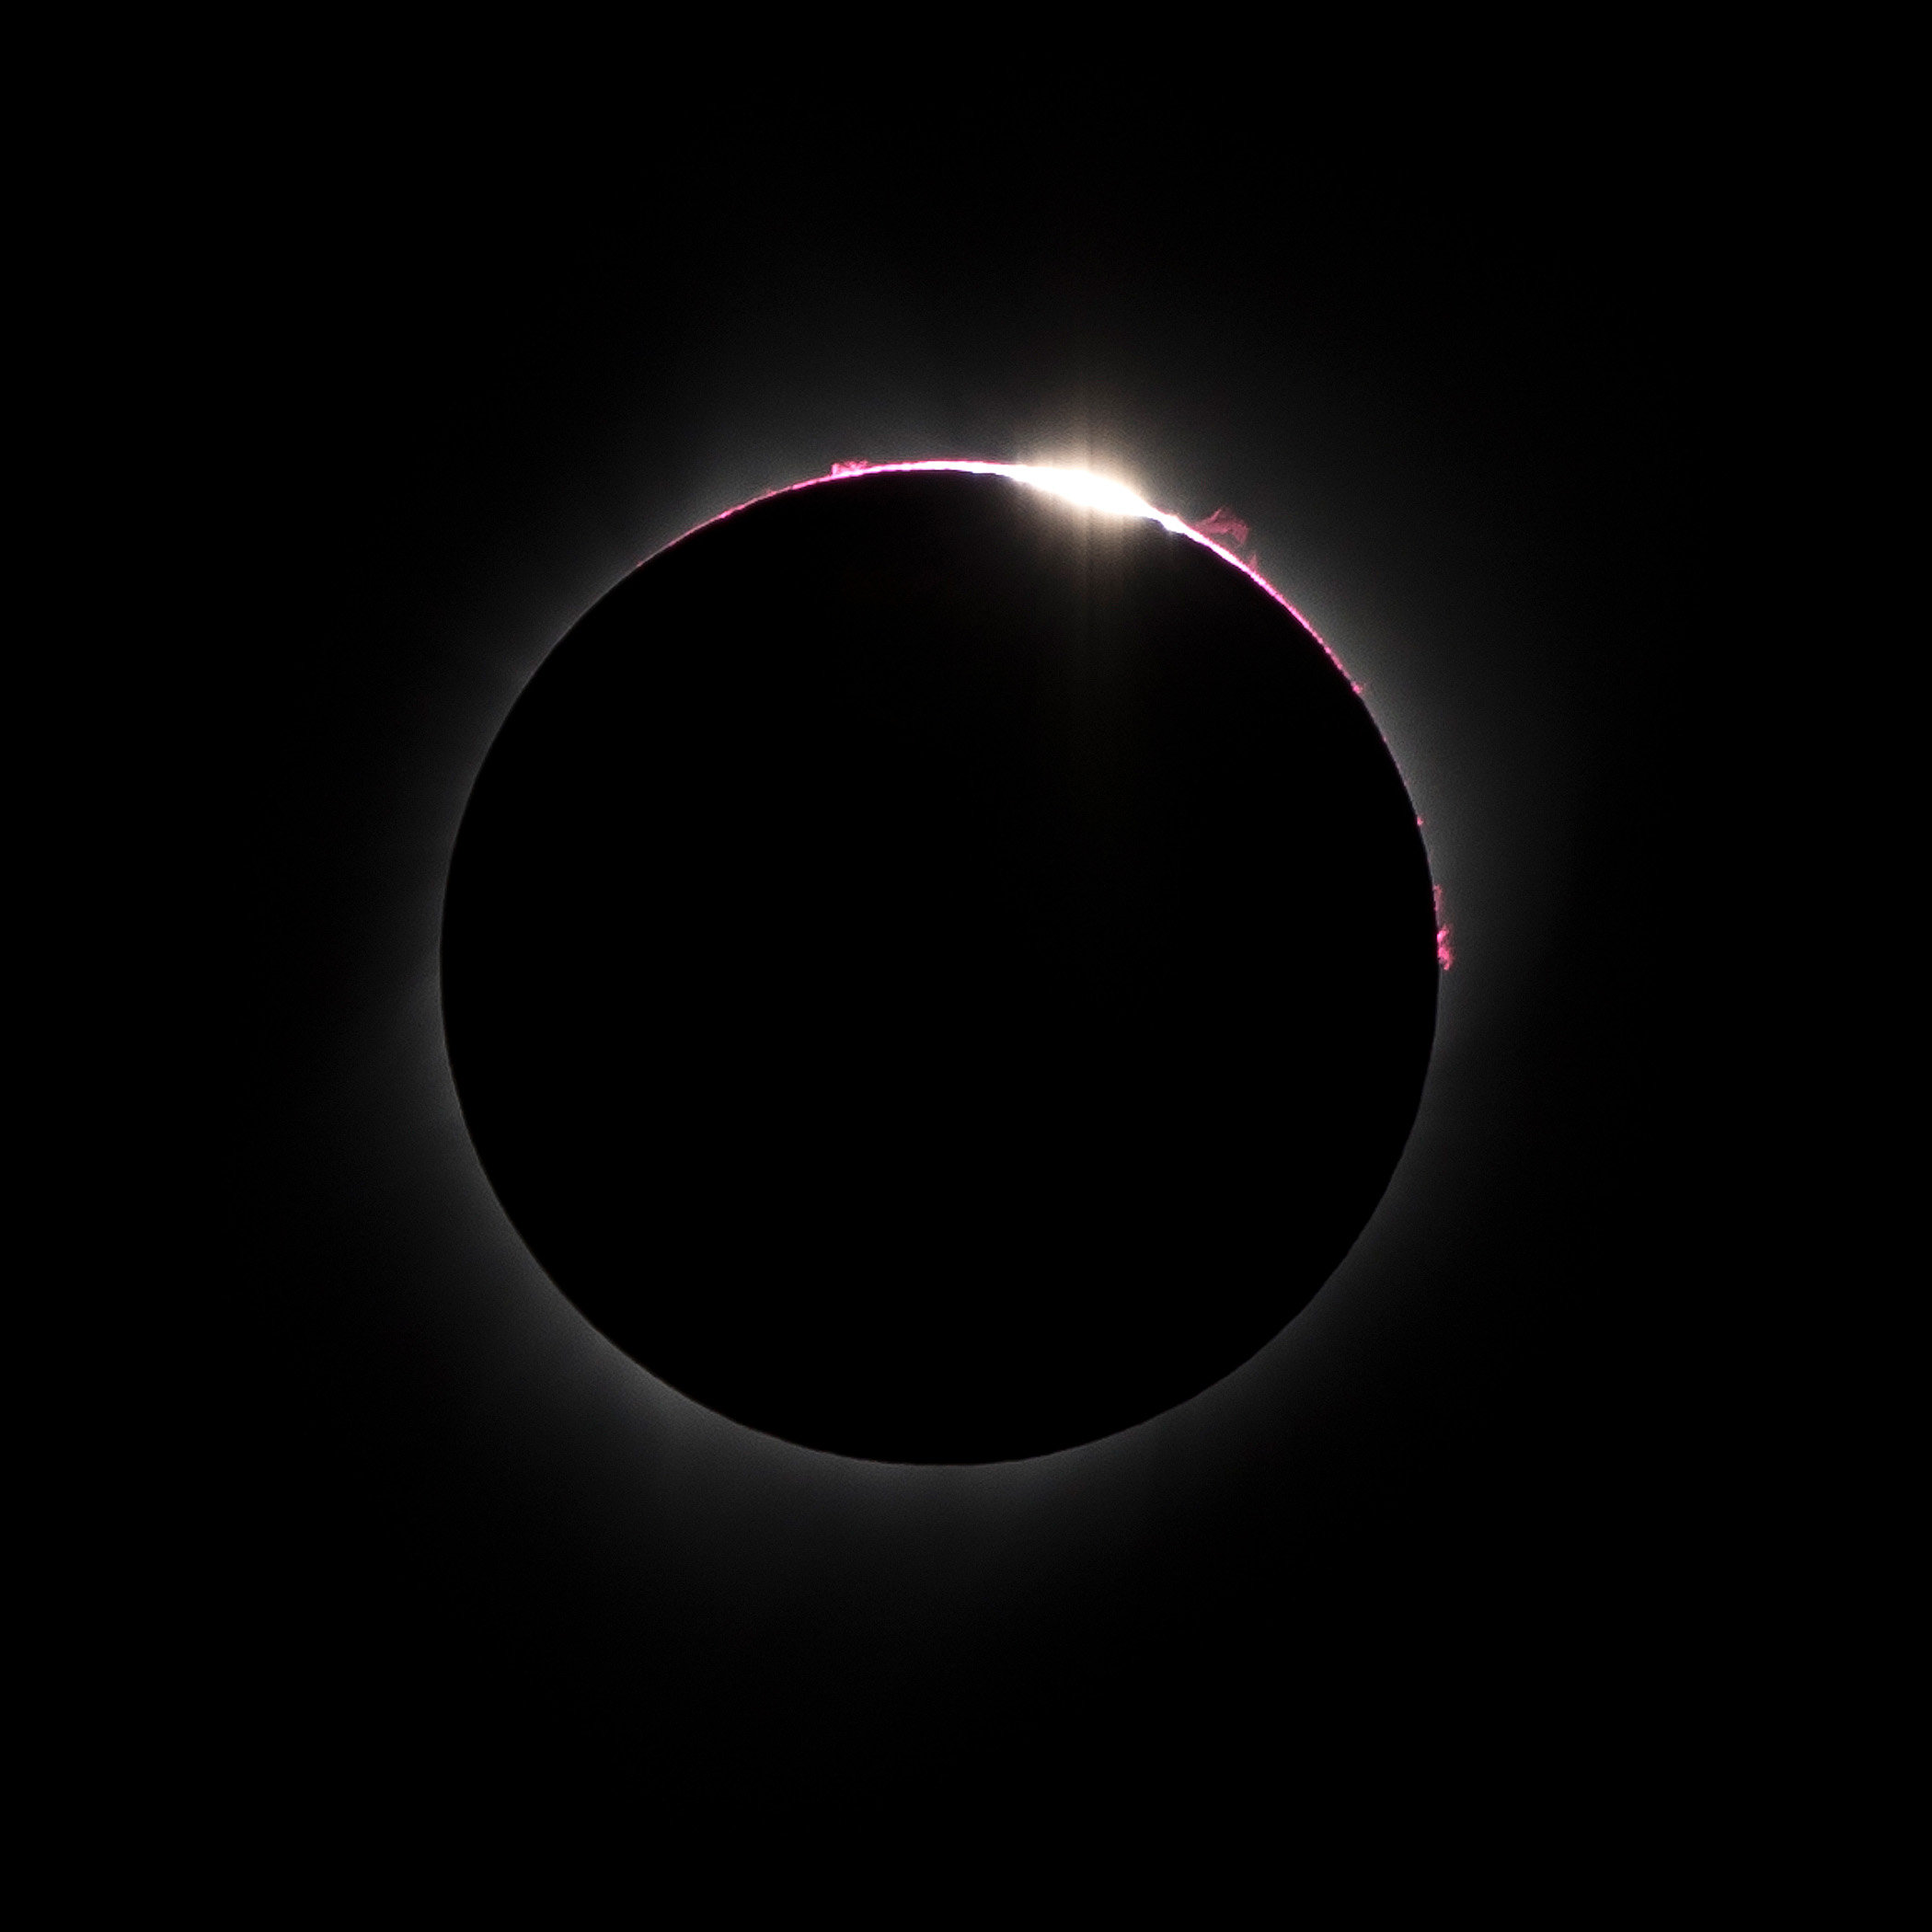 An image captured through a telephoto lens reveals solar eclipse features known as Bailey's Beads and the Diamond Ring effect.